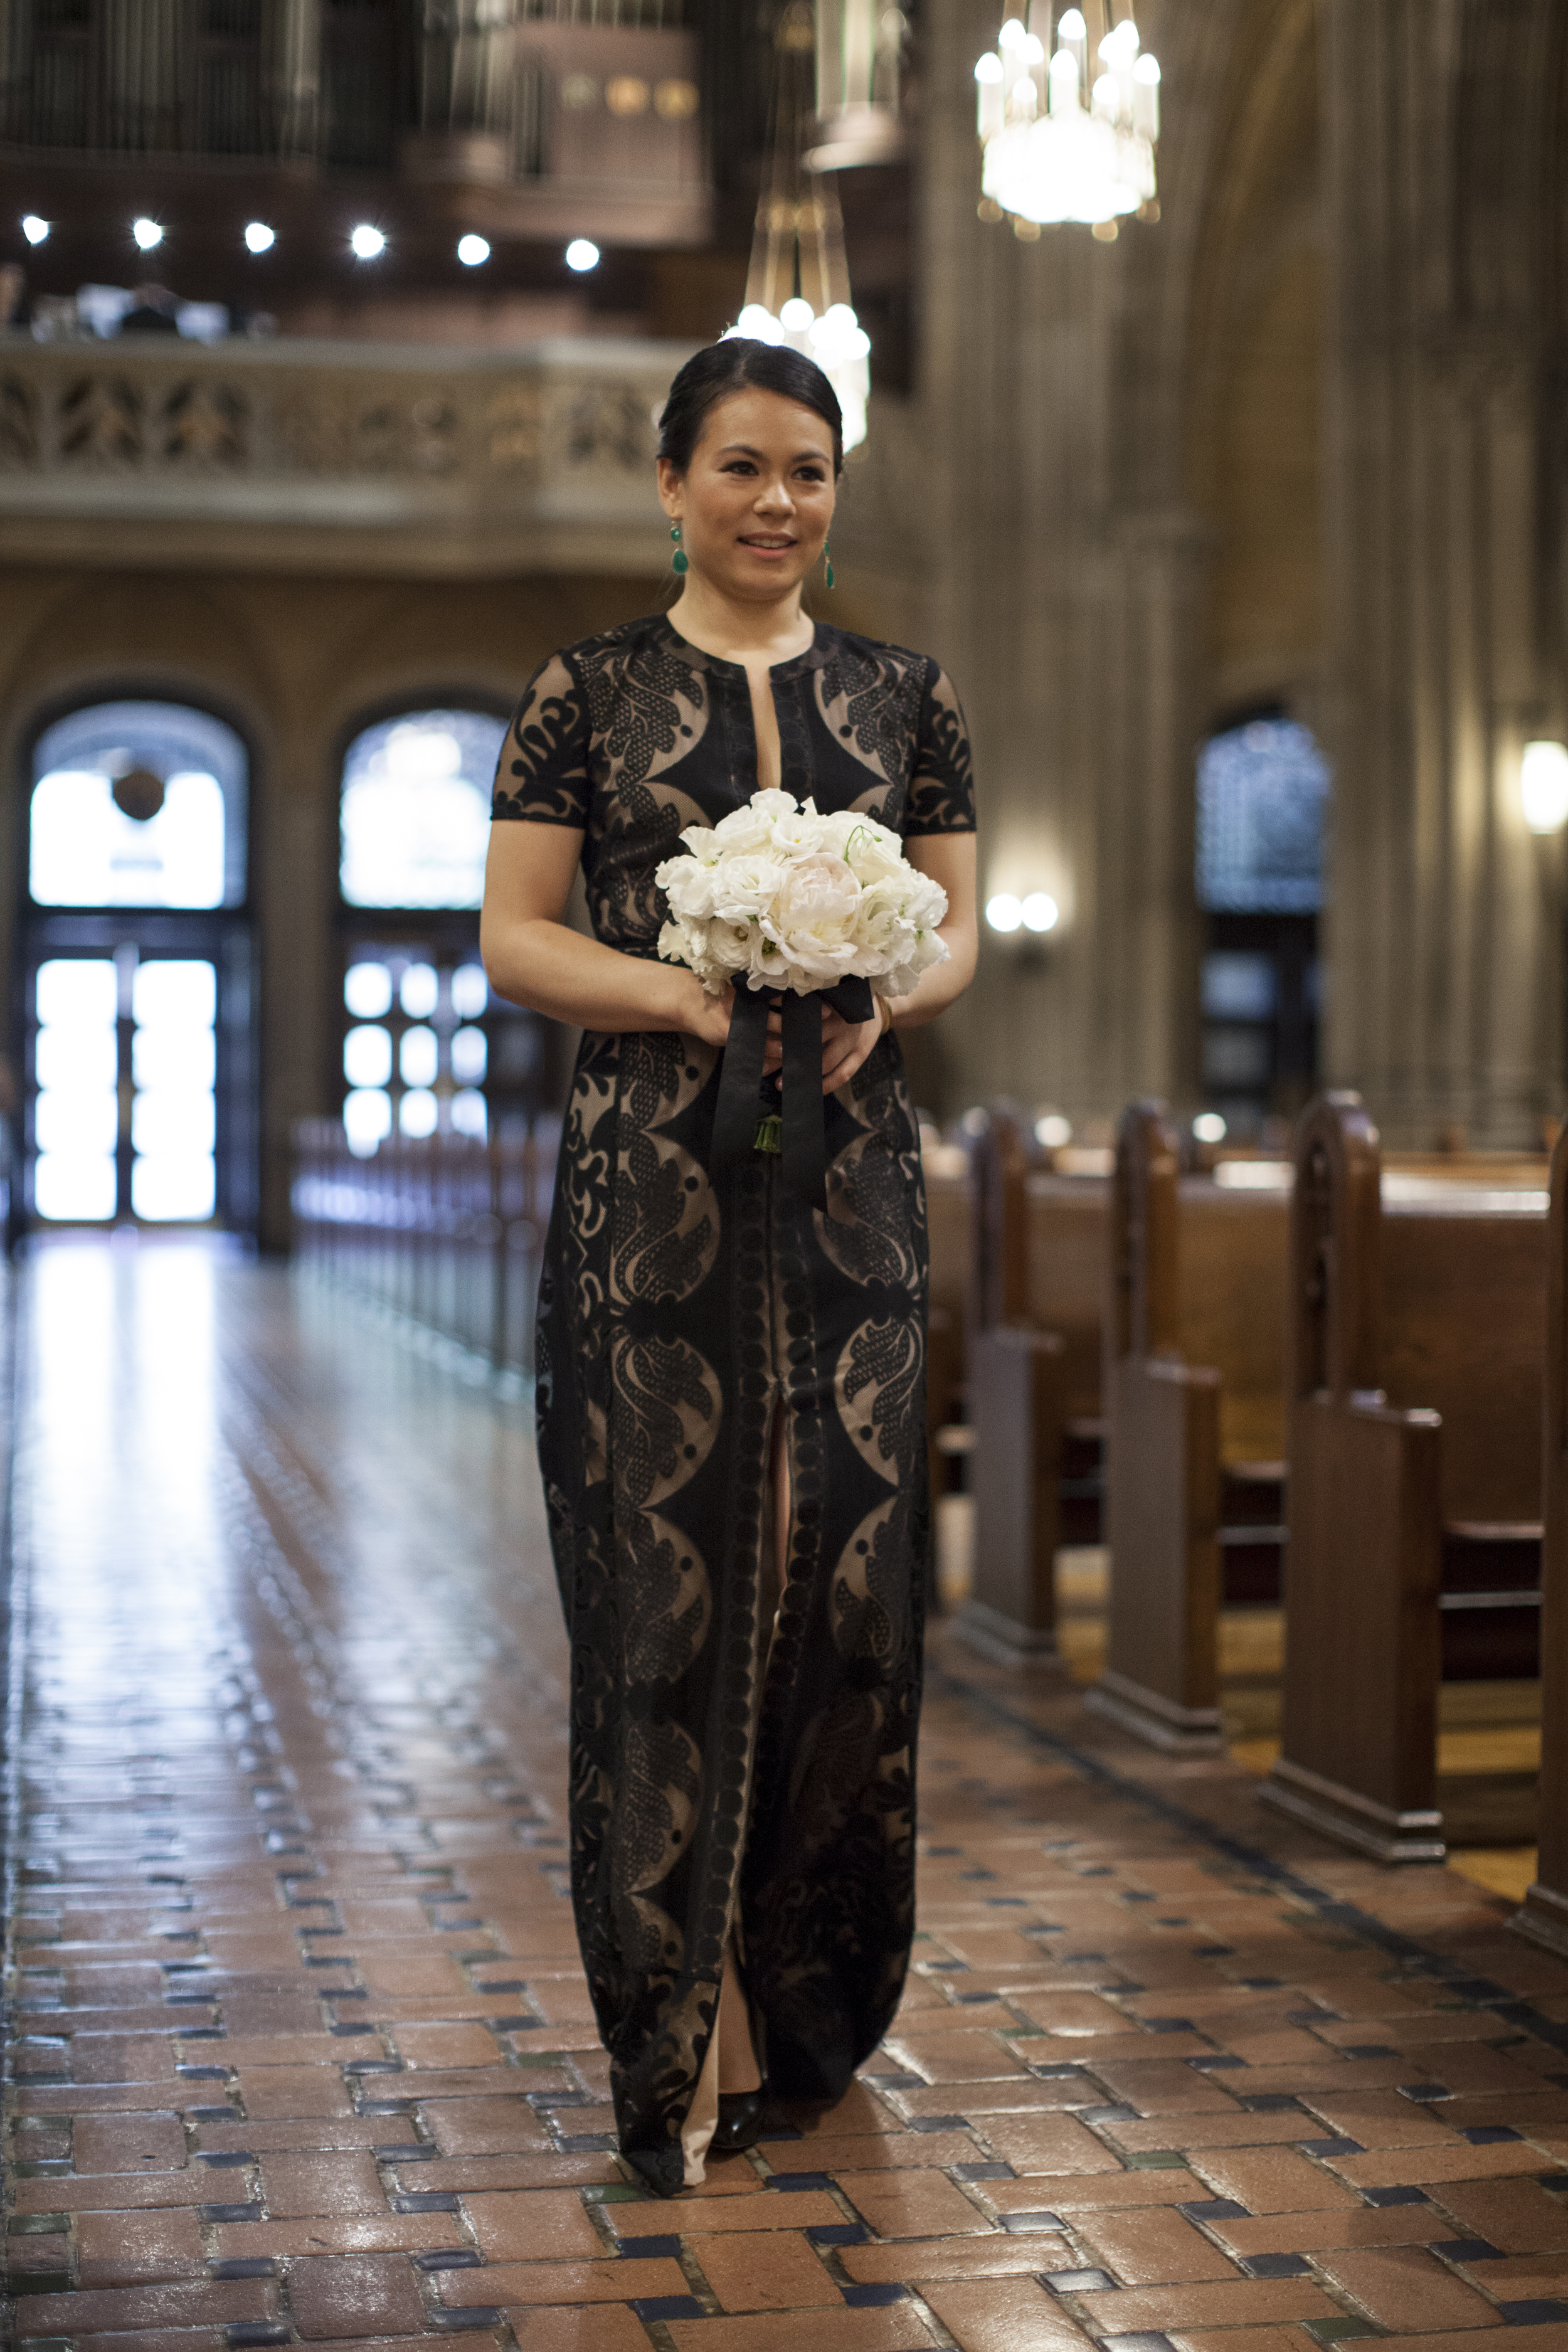 MAID OF HONOR IN ELEGANT BLACK LACE